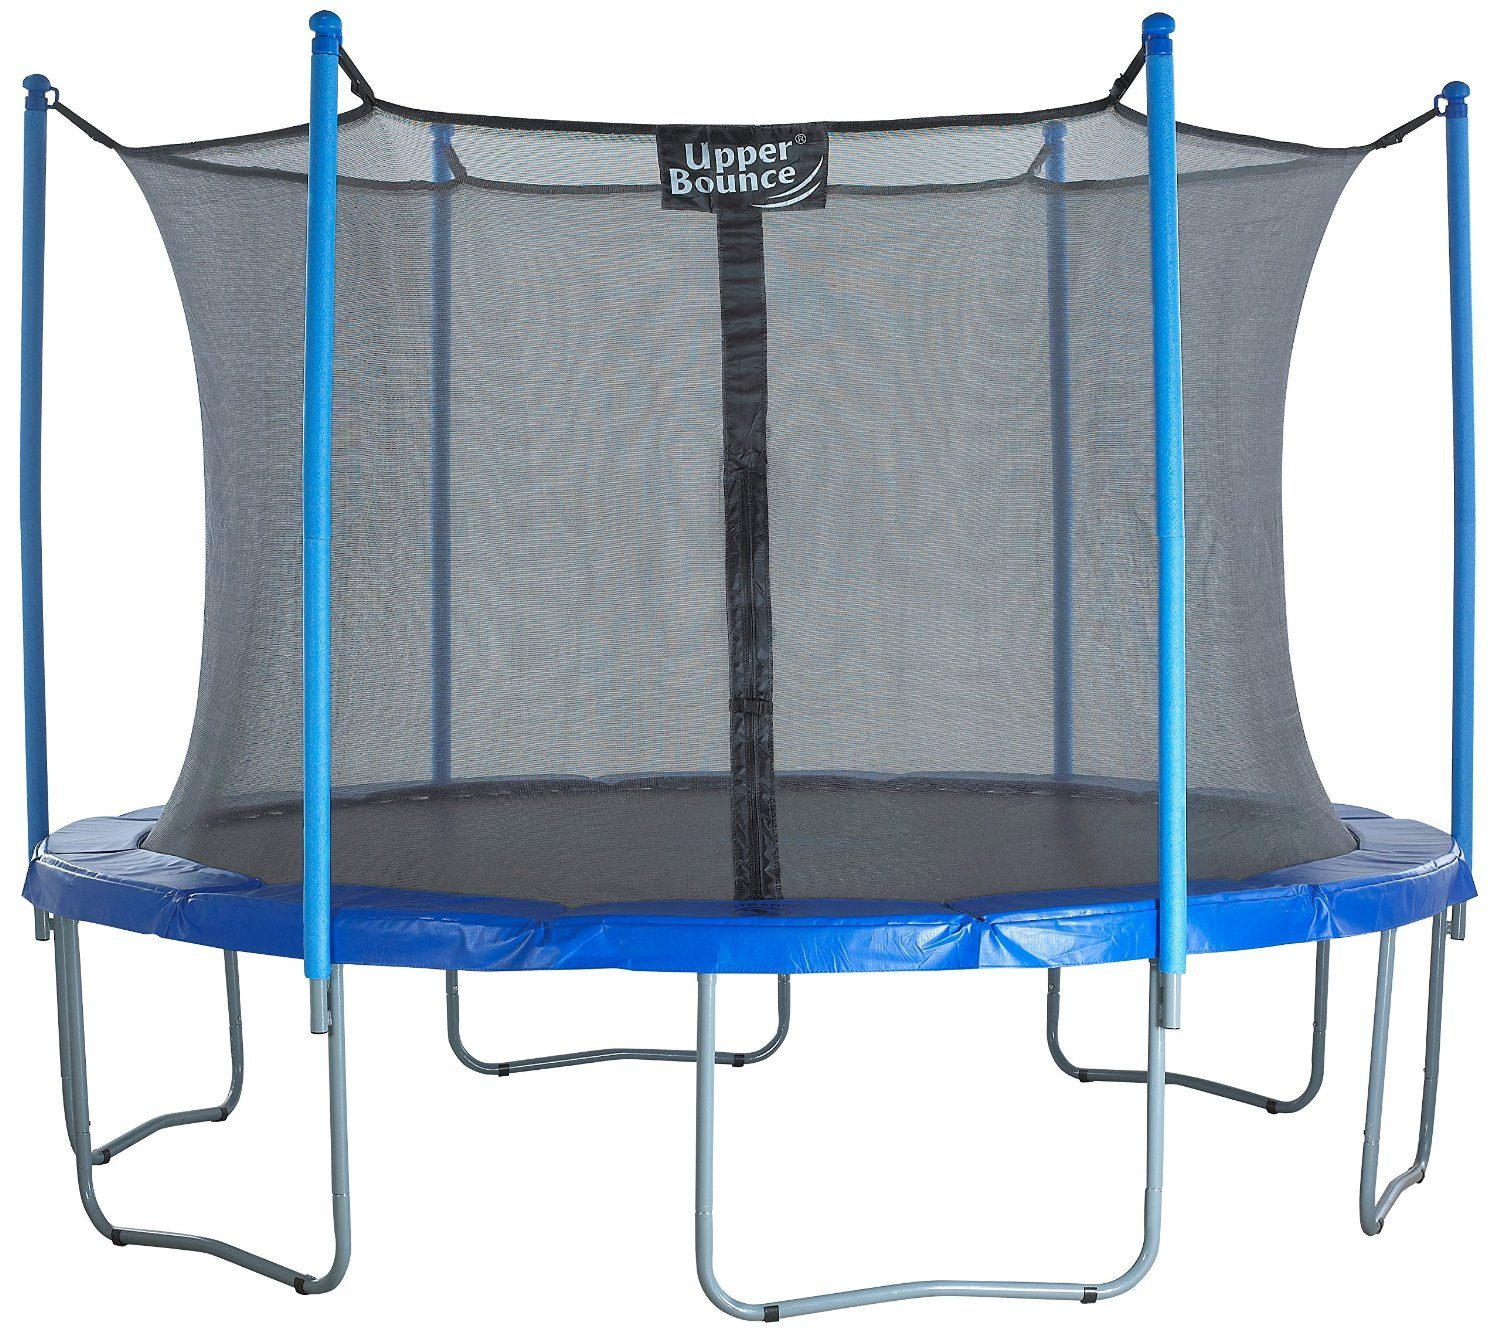 Upper Bounce 14 Foot Trampoline and Enclosure Set